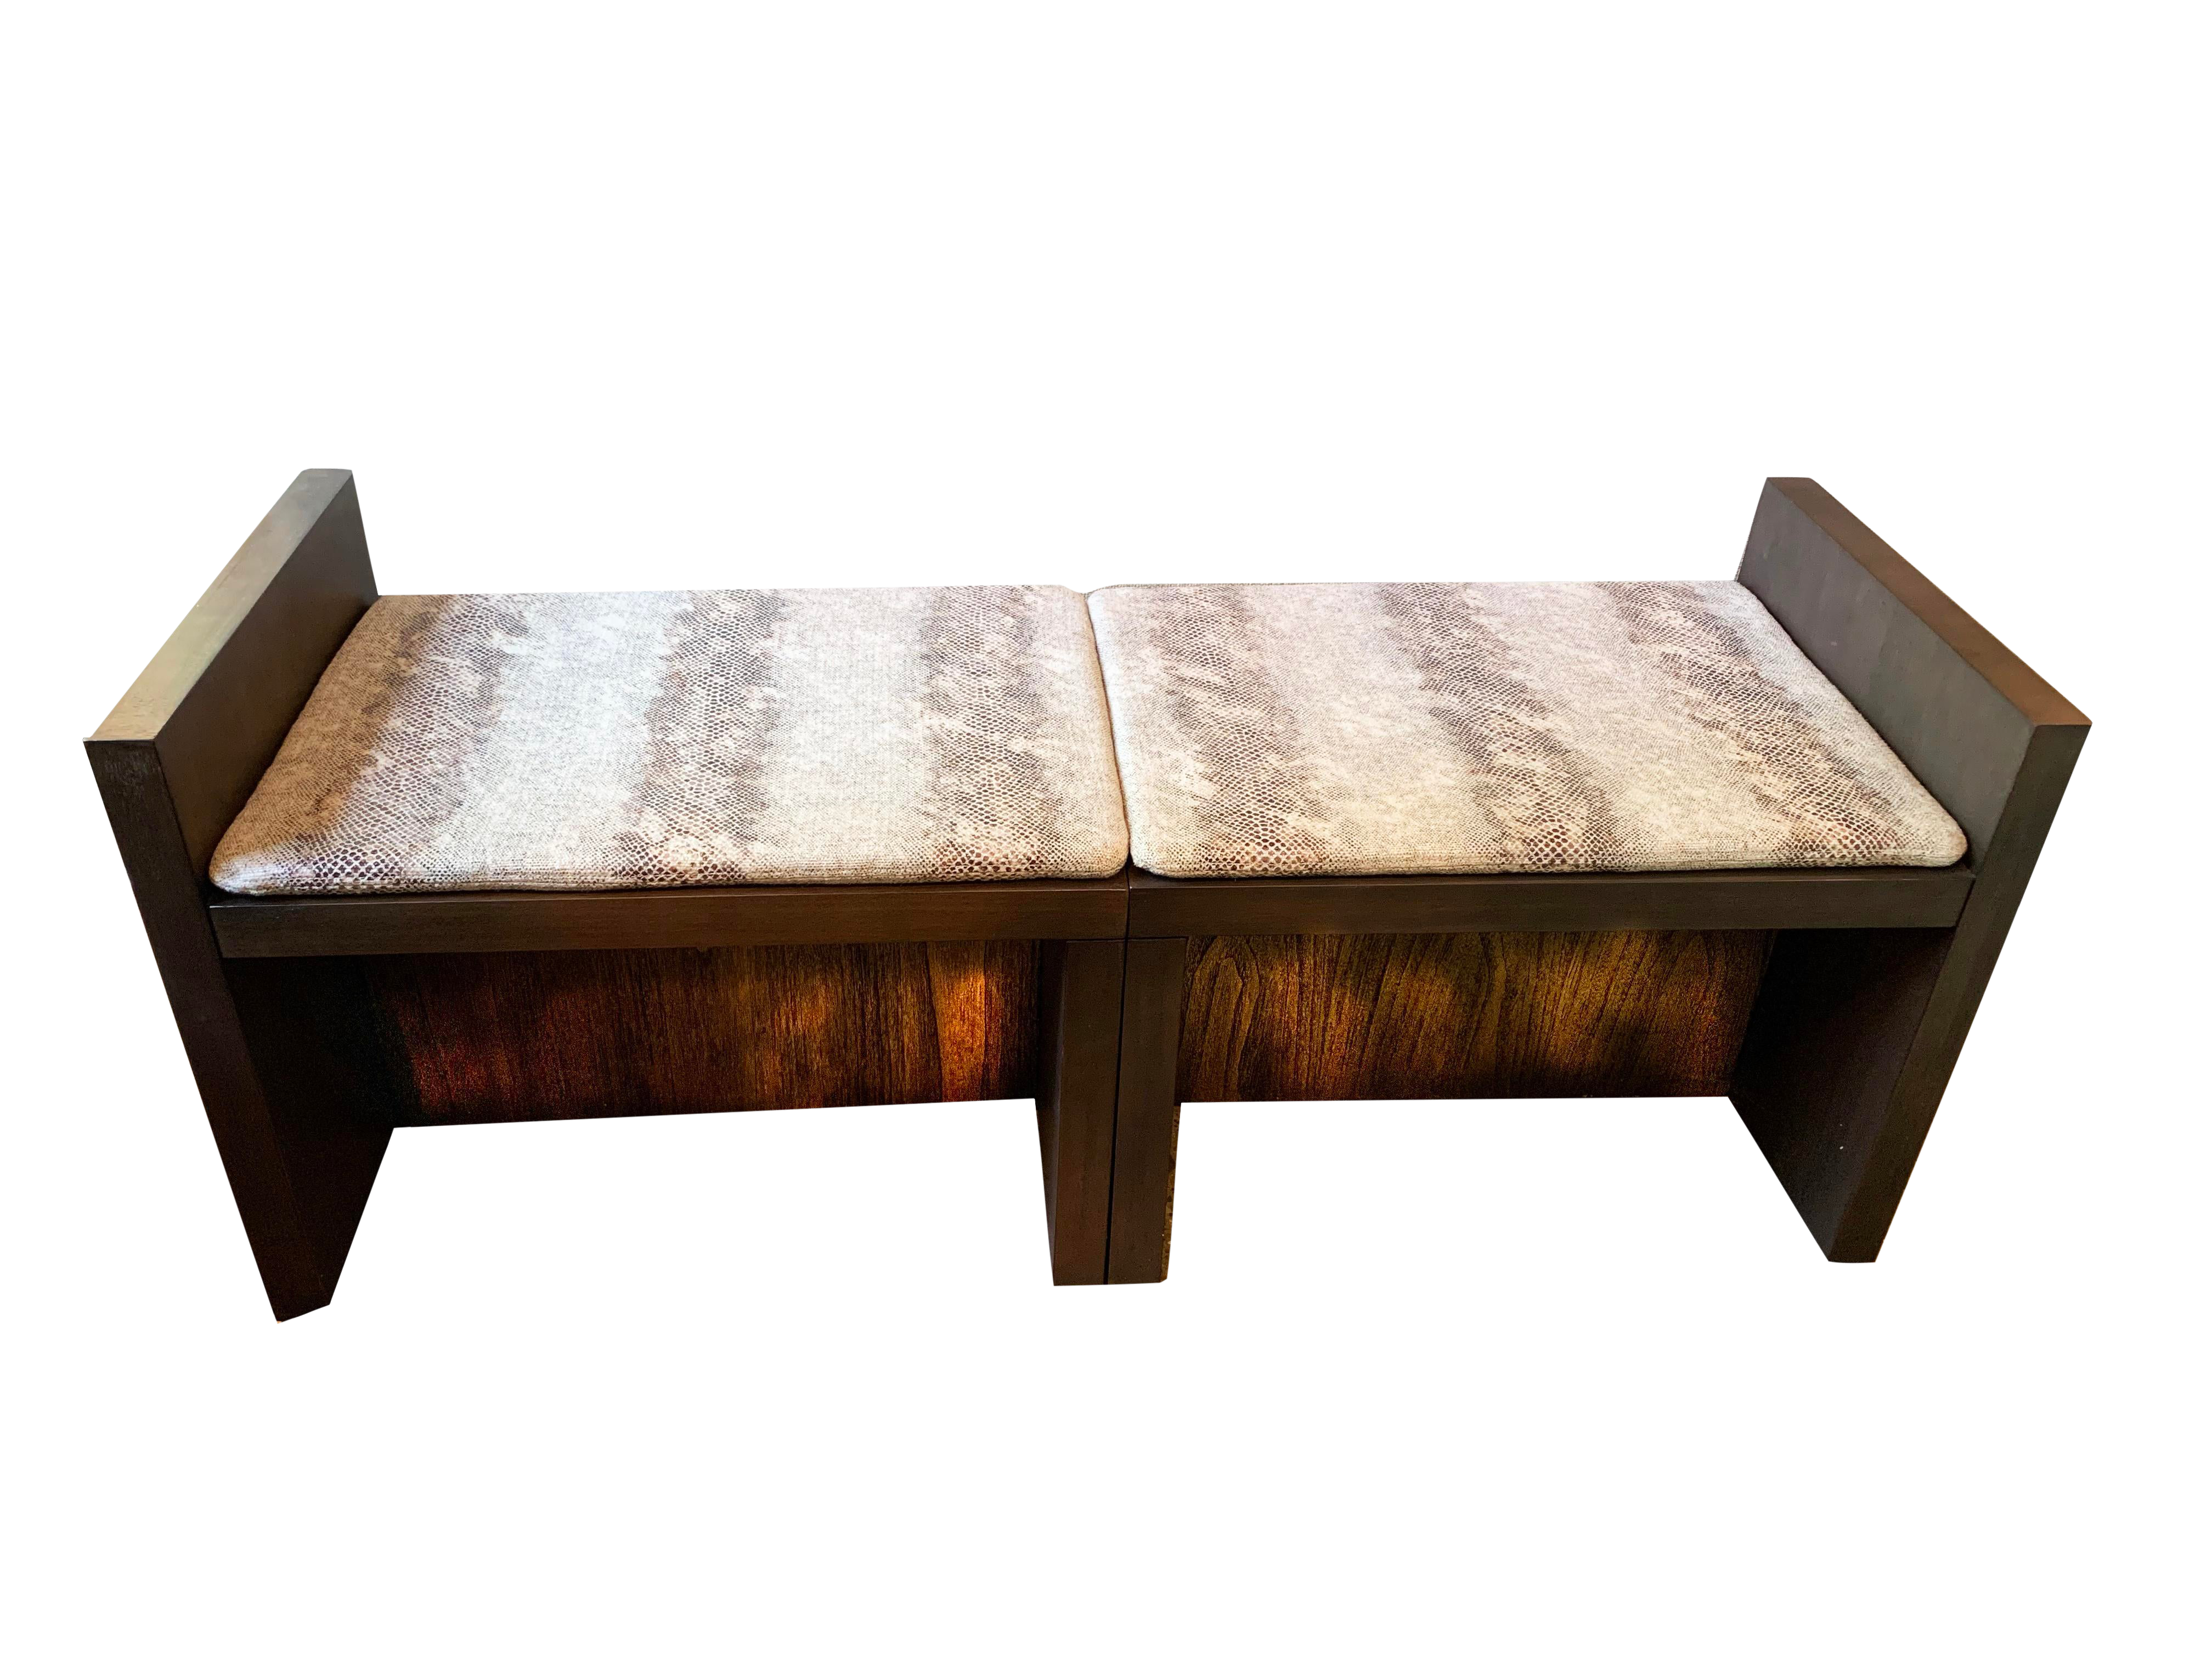 Wondrous Kara Mann For Milling Road Together Benches A Pair Ibusinesslaw Wood Chair Design Ideas Ibusinesslaworg